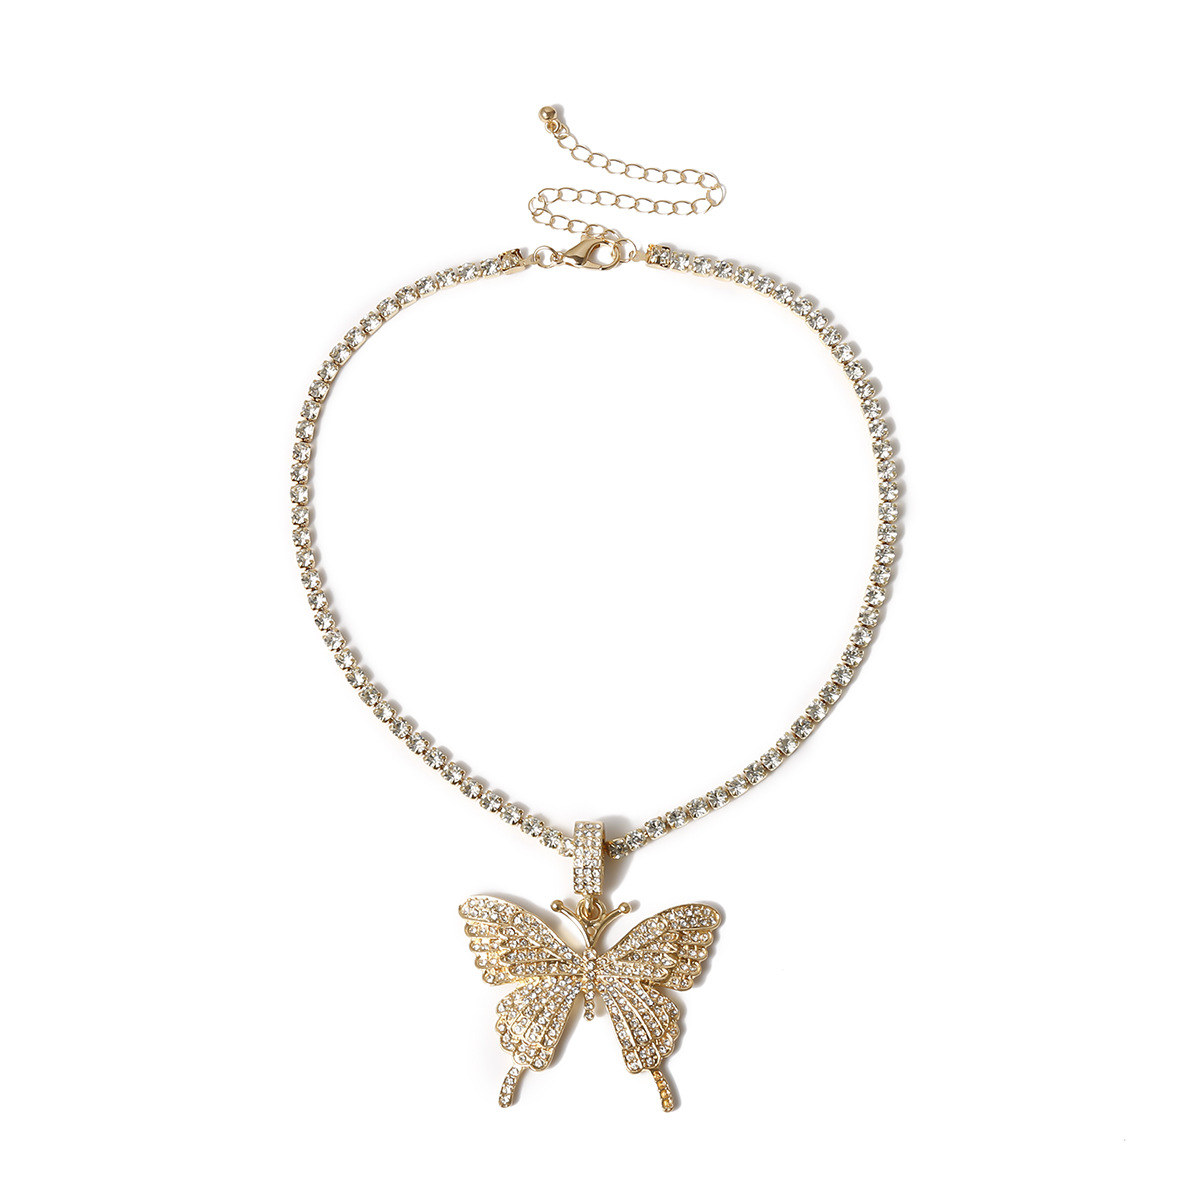 Fashion Jewelry yiwu nihaojewelry Wholesale Single Layer Claw Chain Diamond Necklace Exaggerated Diamond Large Butterfly Necklace NHXR213633